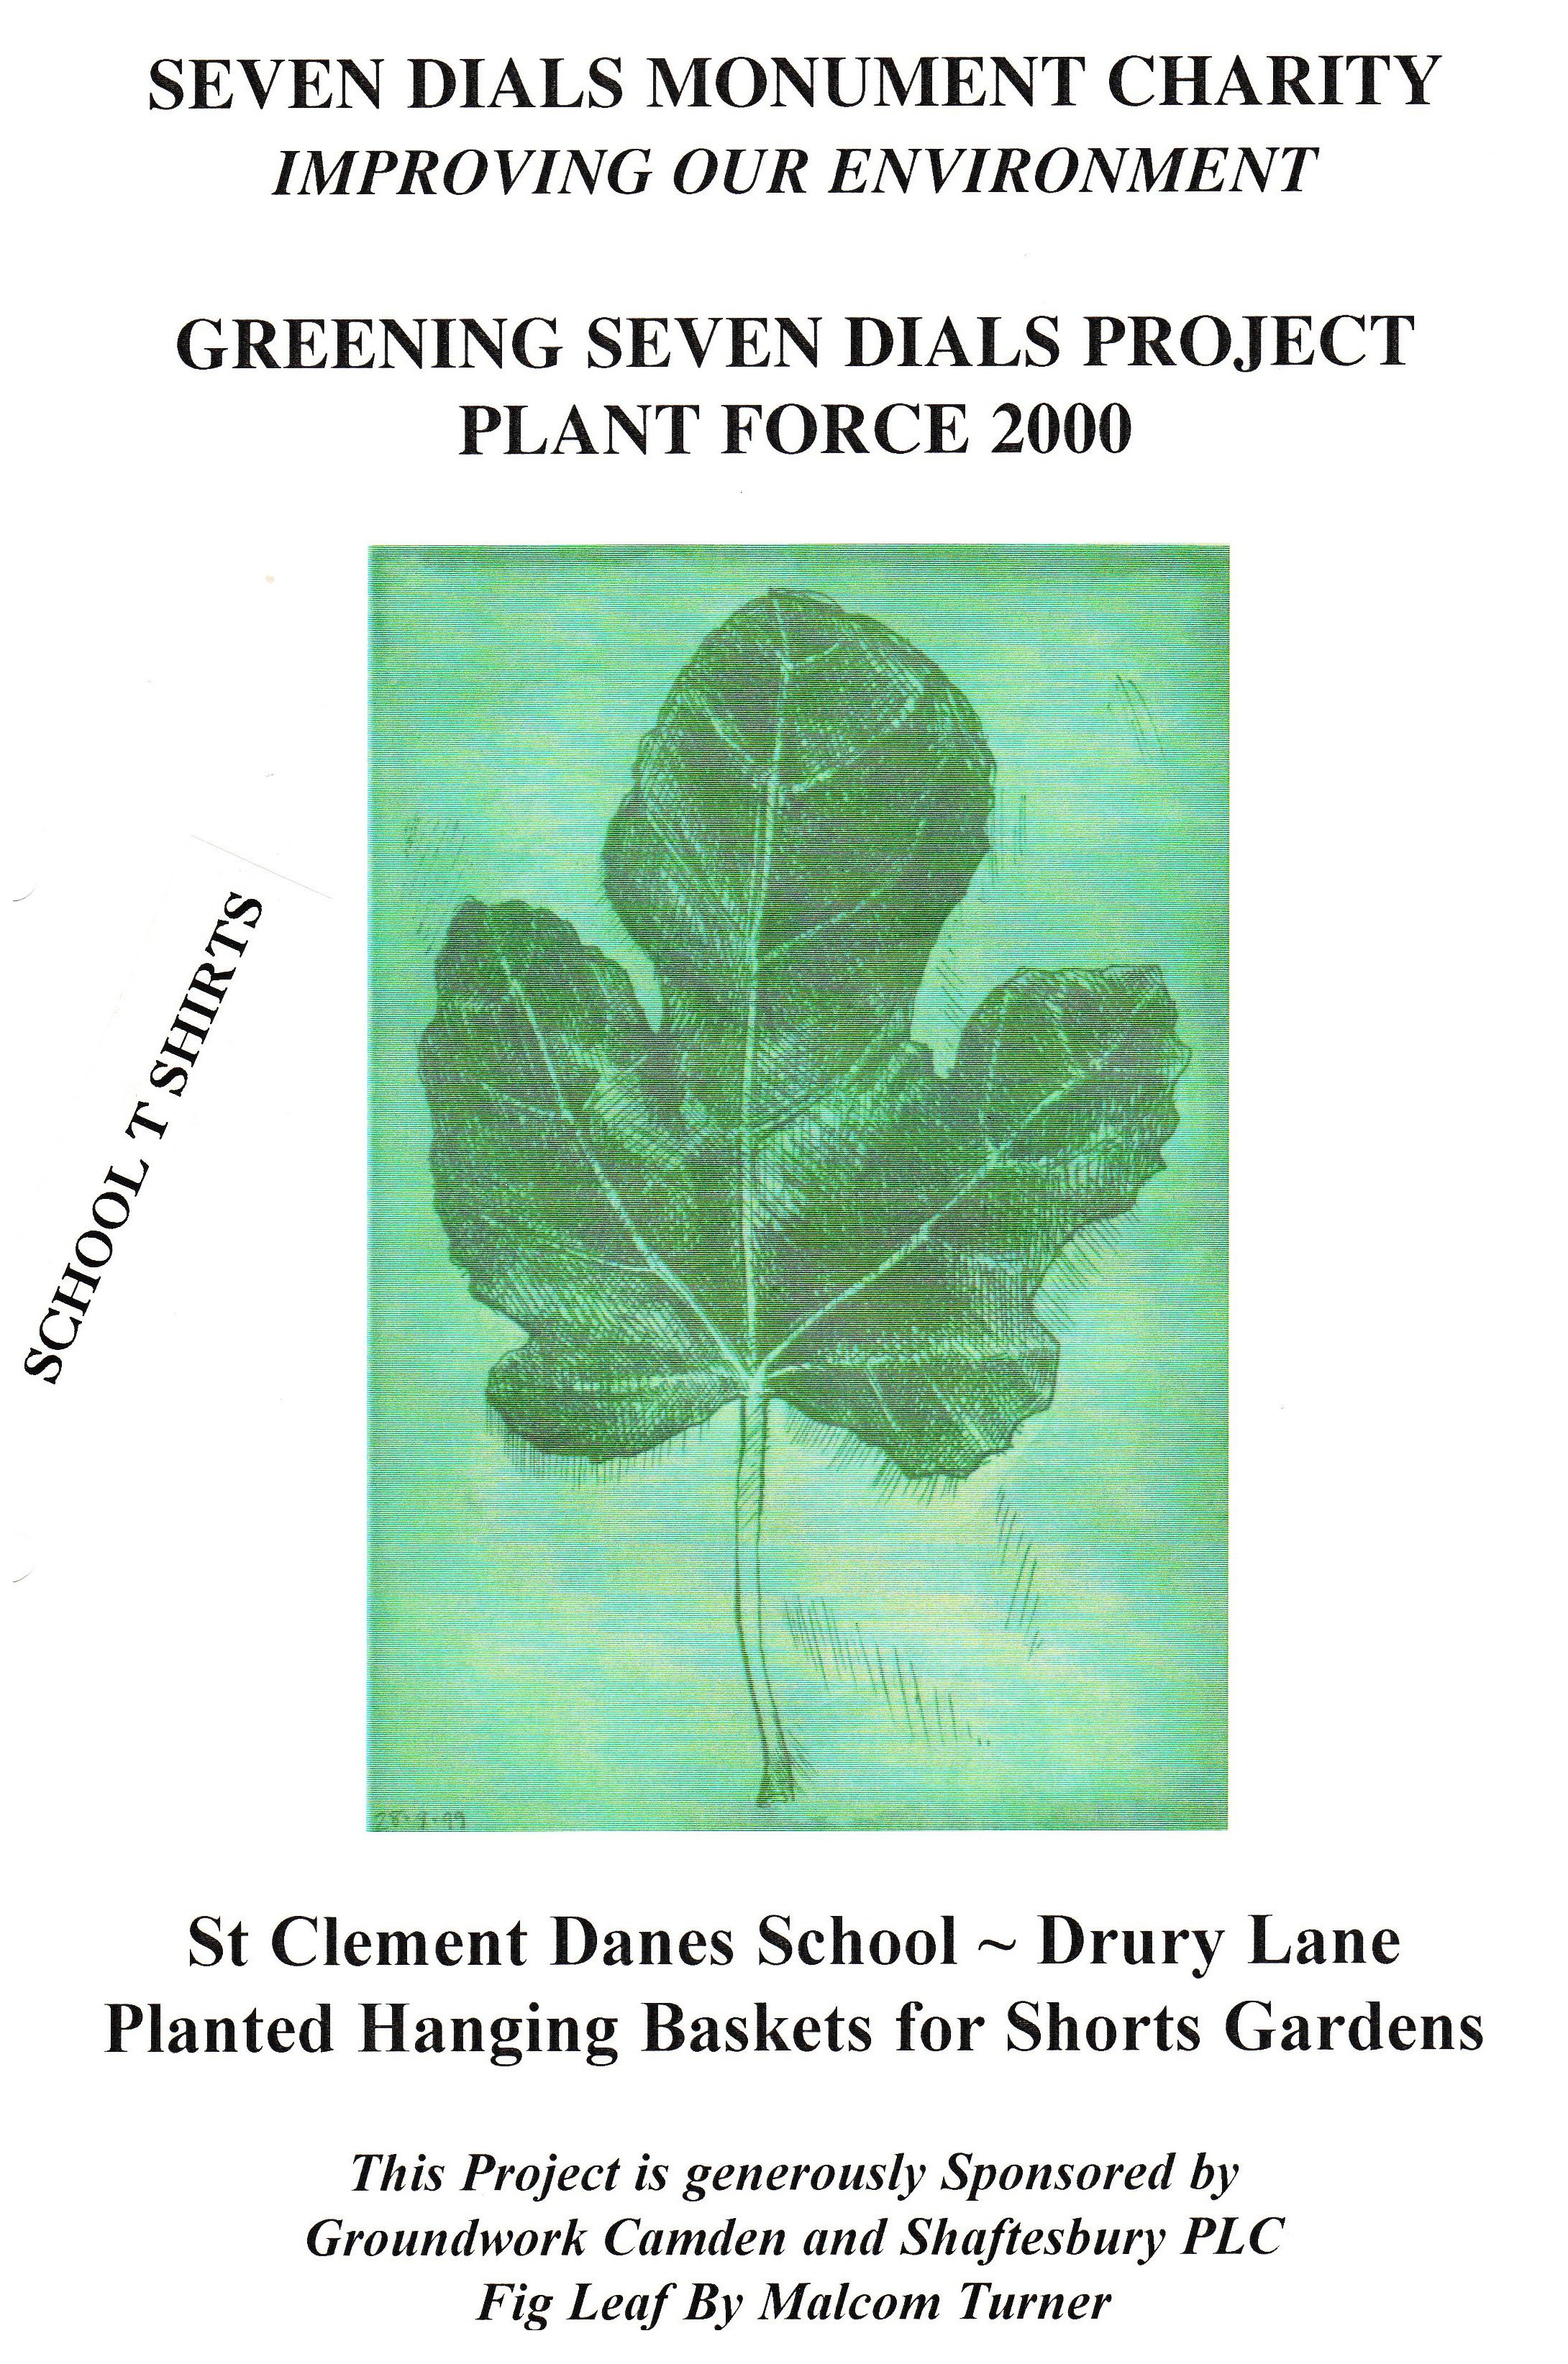 Children from both schools received a Plant Force 2000 tee-shirt, featuring the leaf motif.